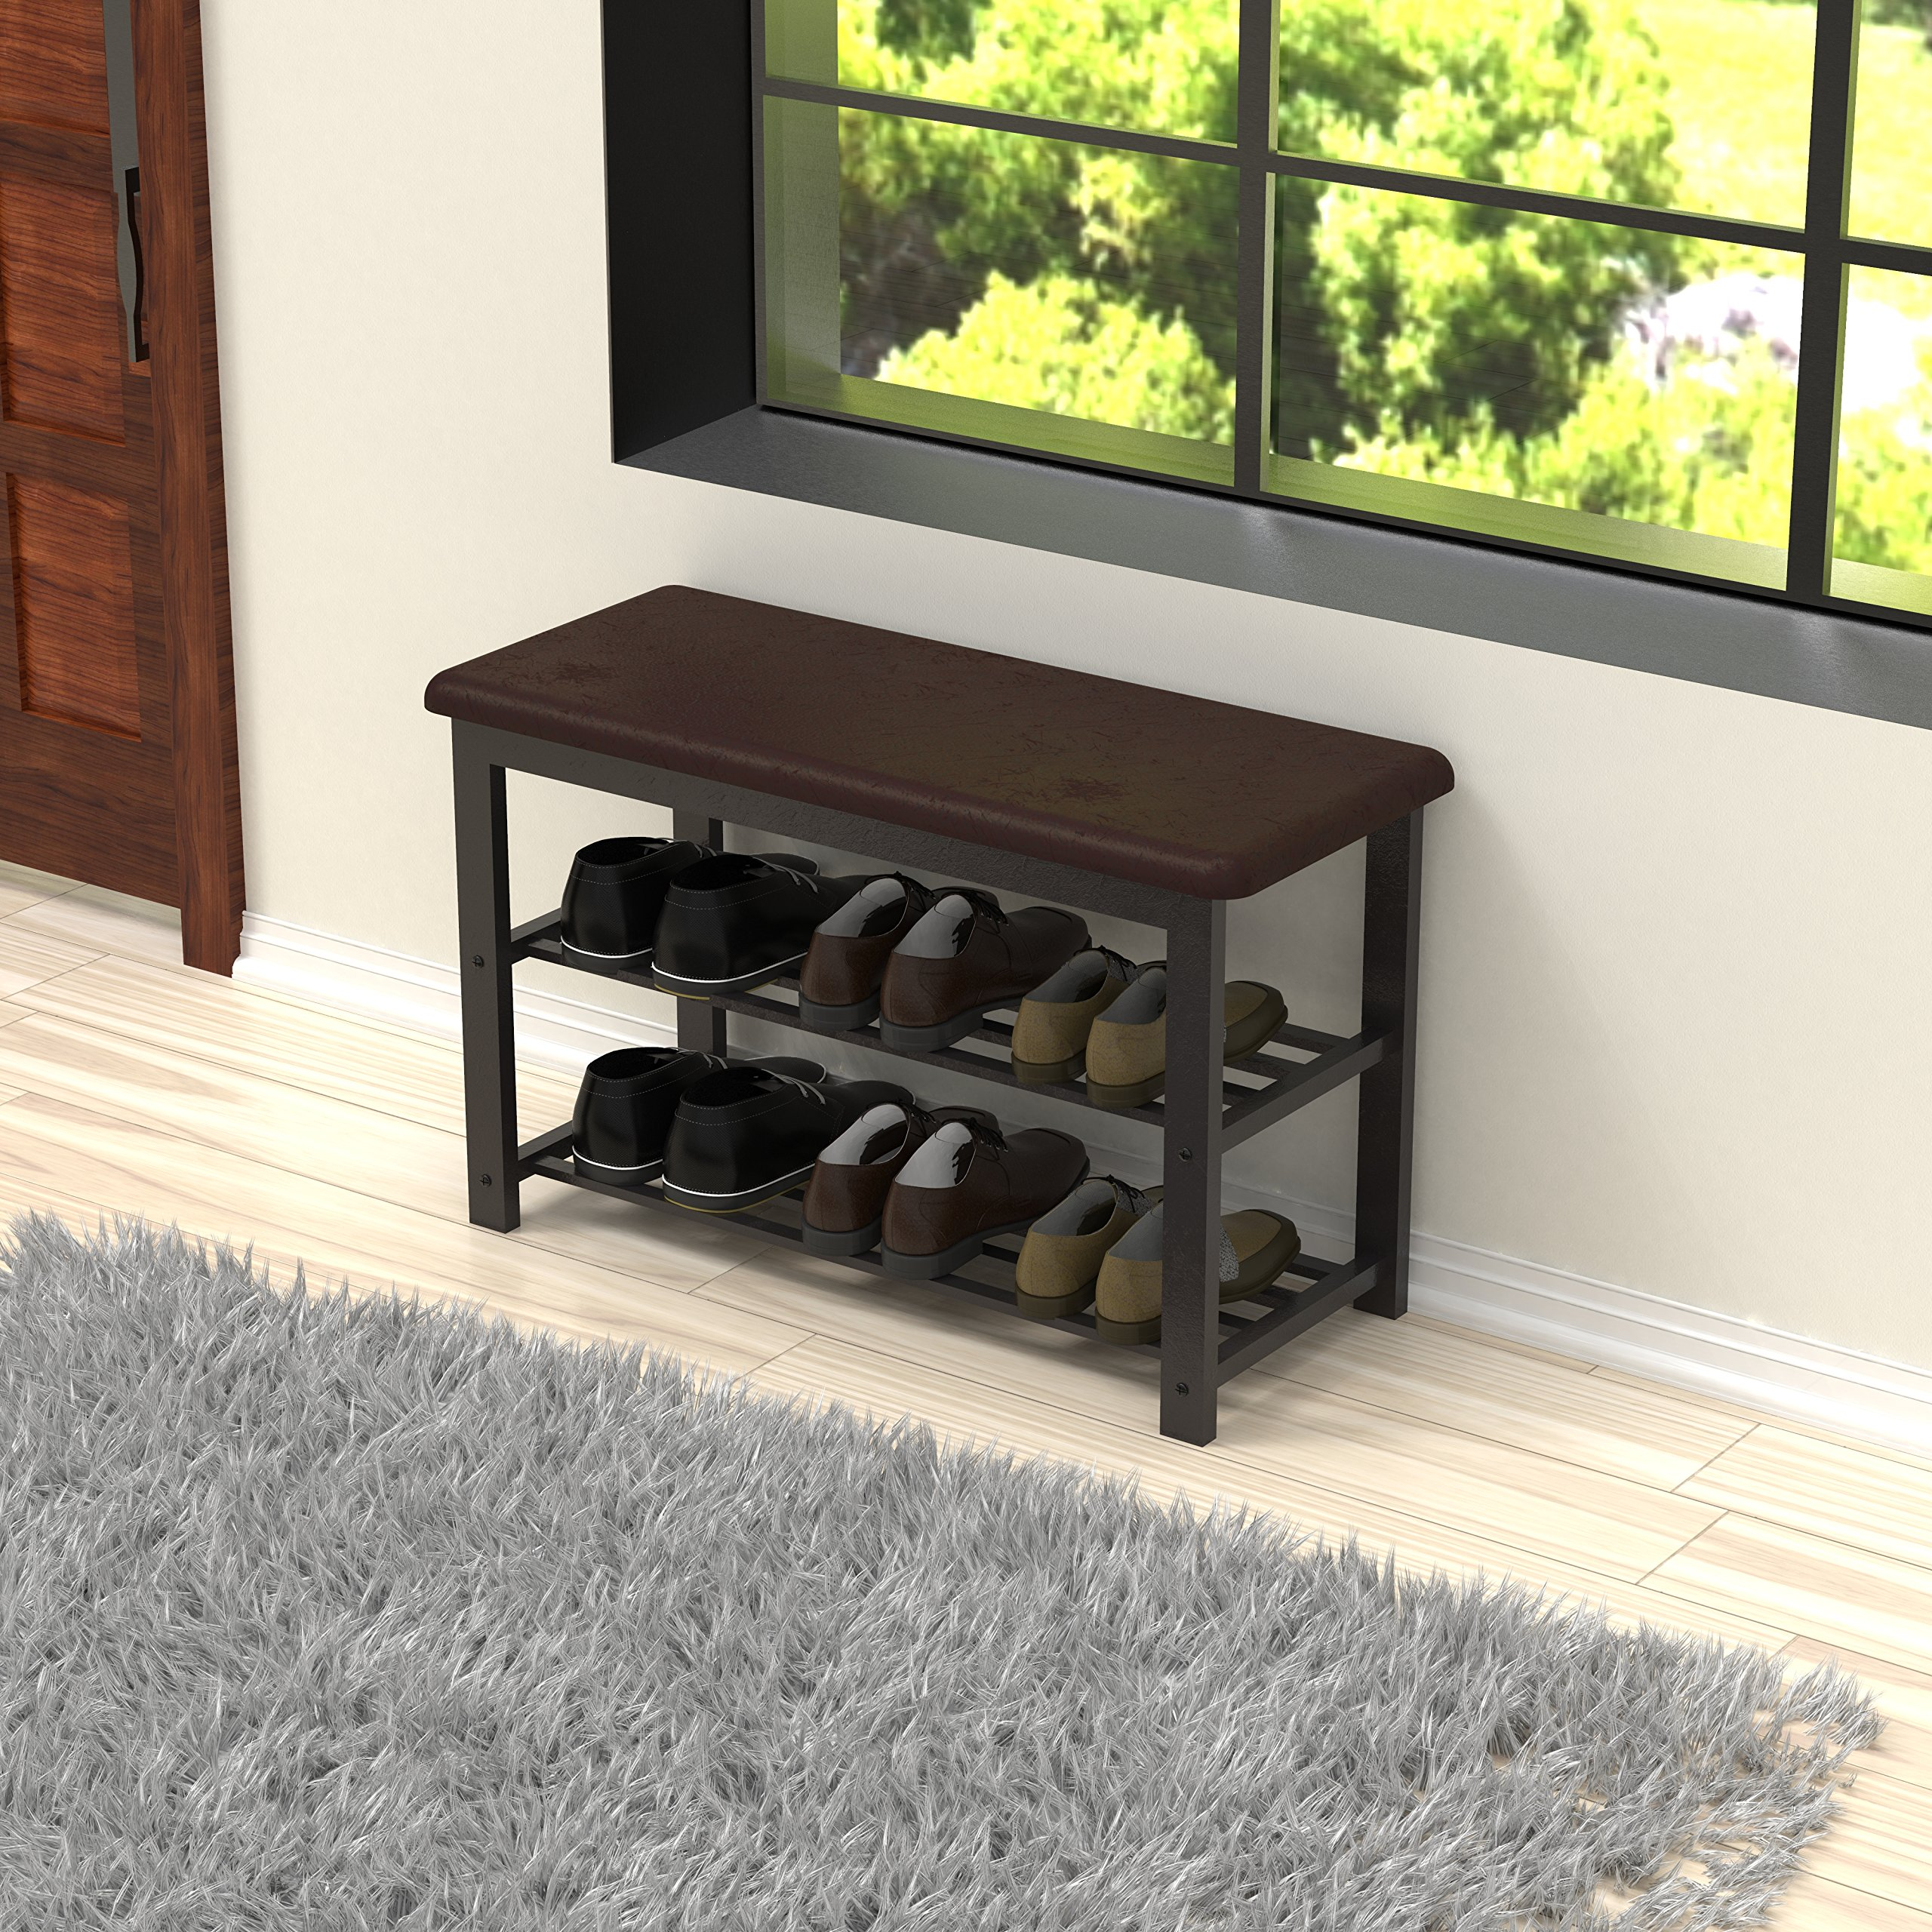 Simple Houseware Faux Leather Top Shoe Bench for Entryway Shoes Storage Organizer Rack by Simple Houseware (Image #5)